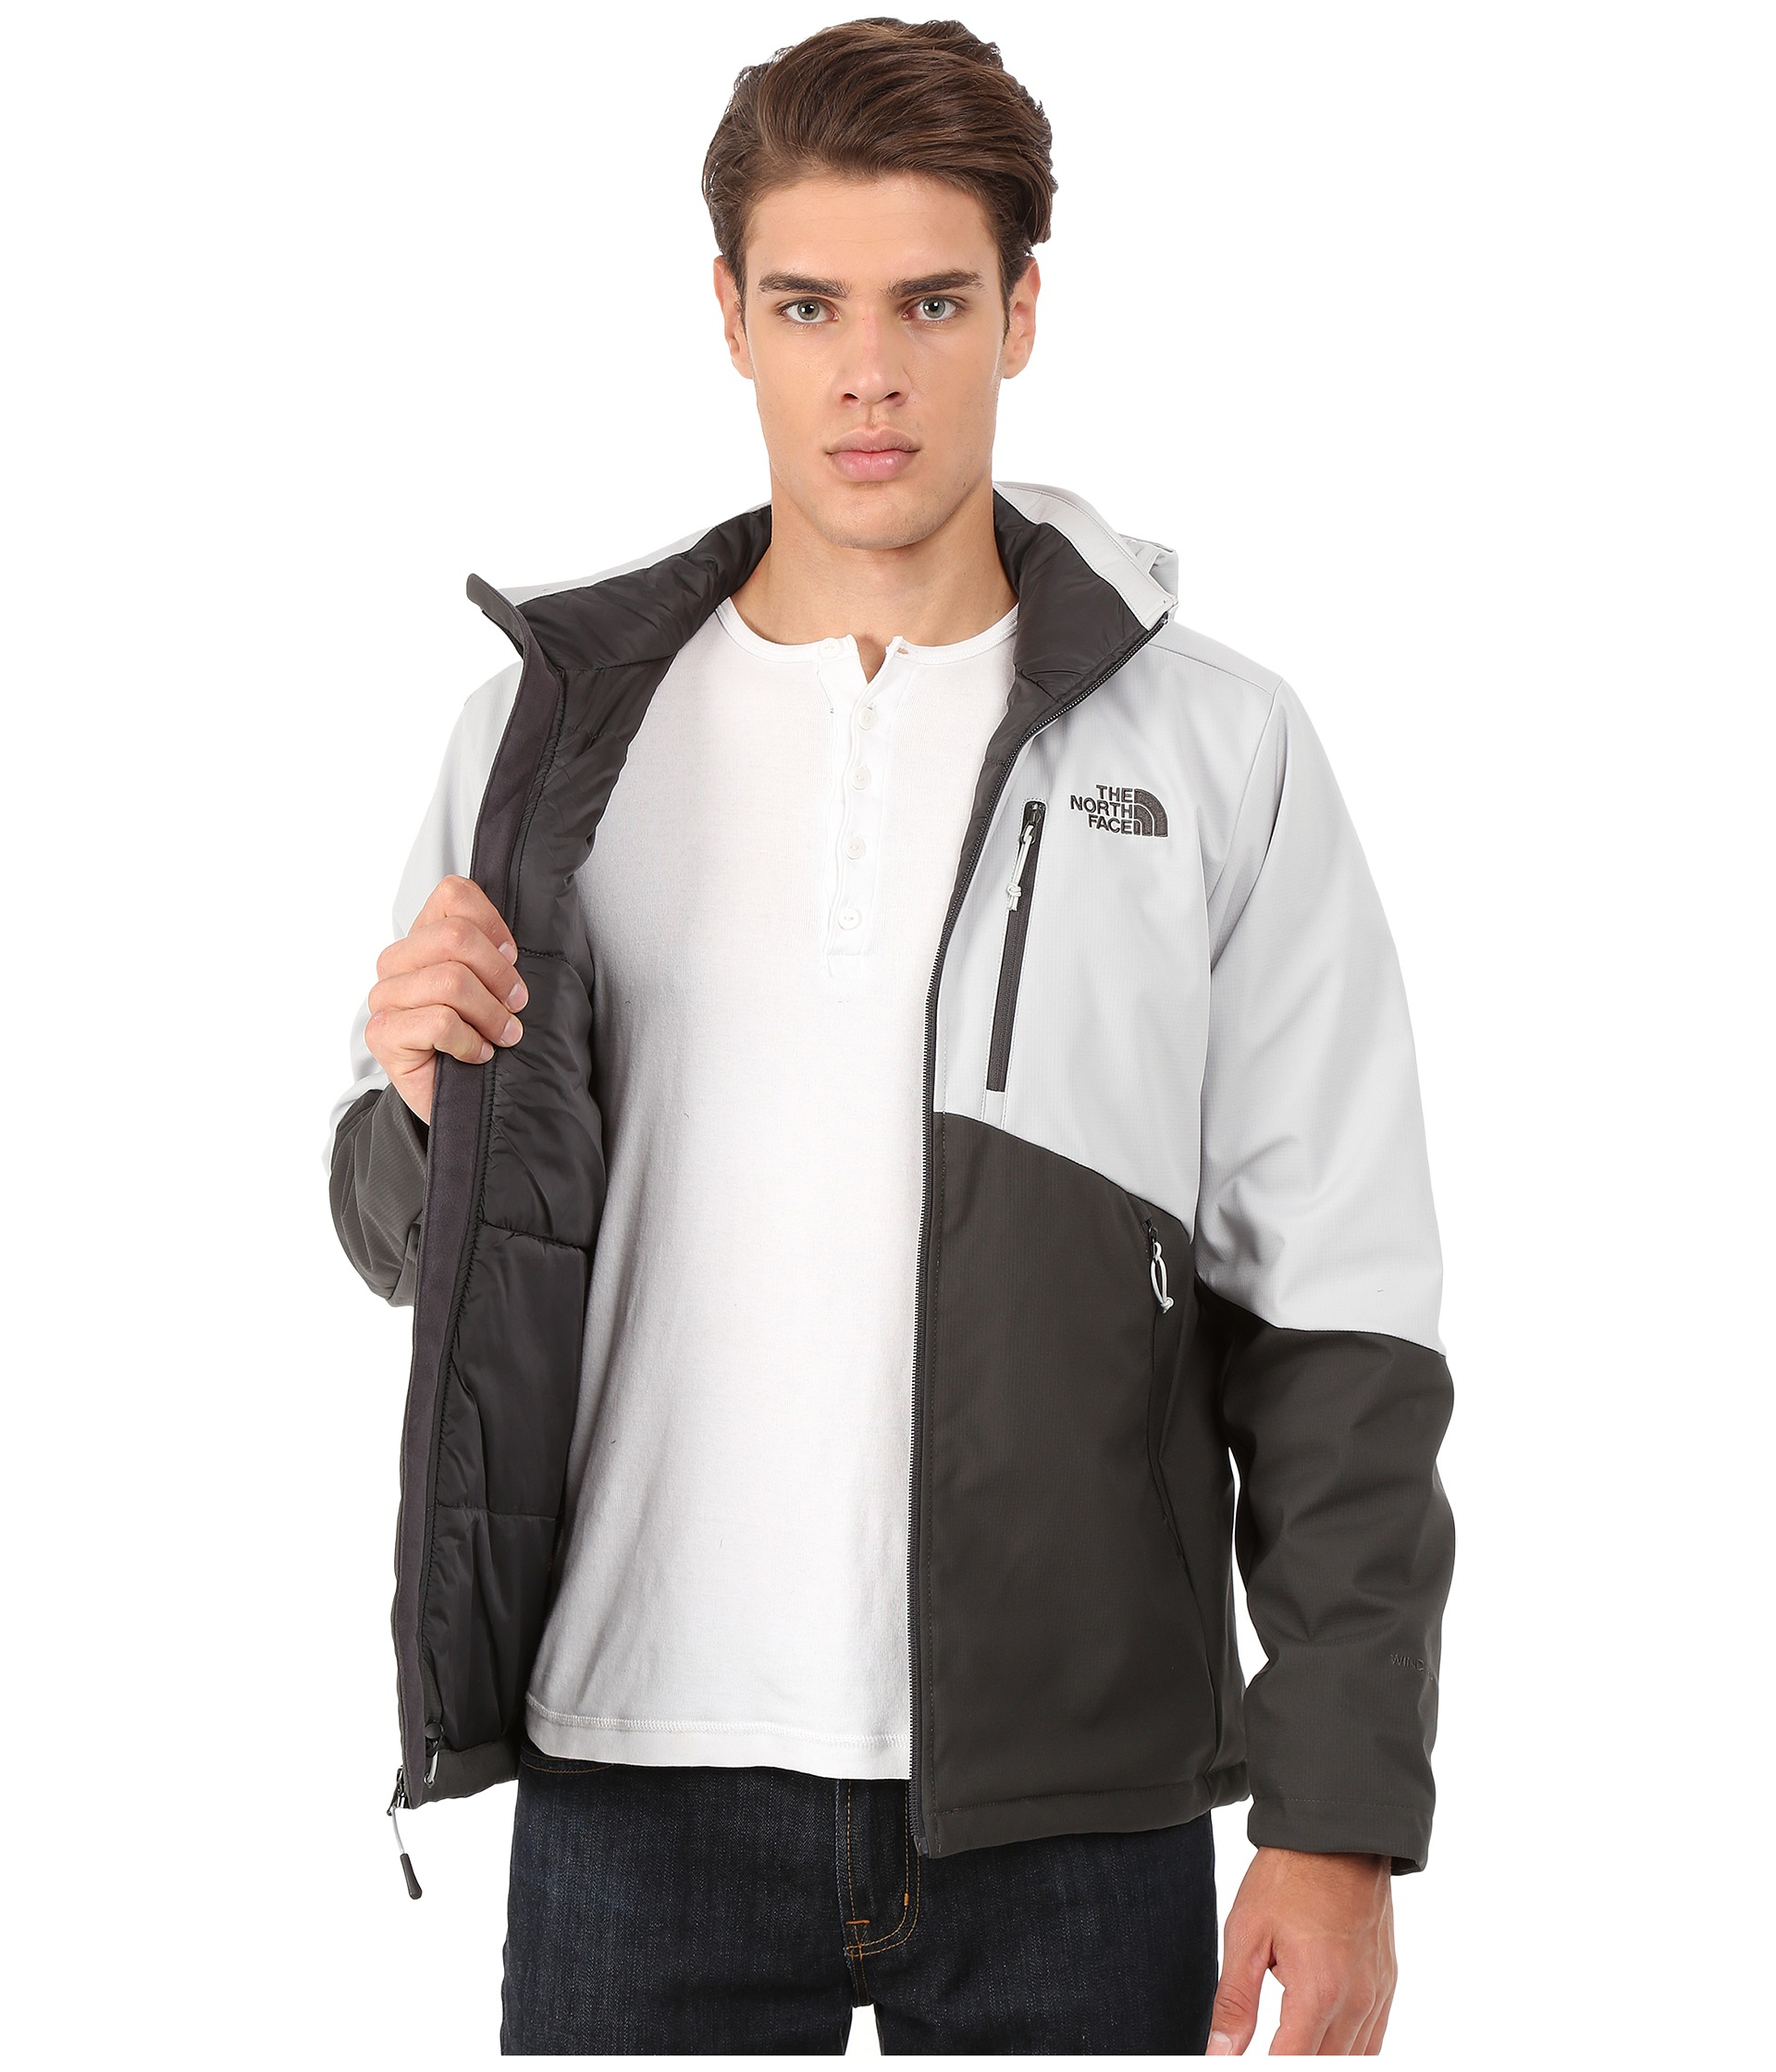 29675f196 italy north face apex elevation jacket macys d5477 7a3ce